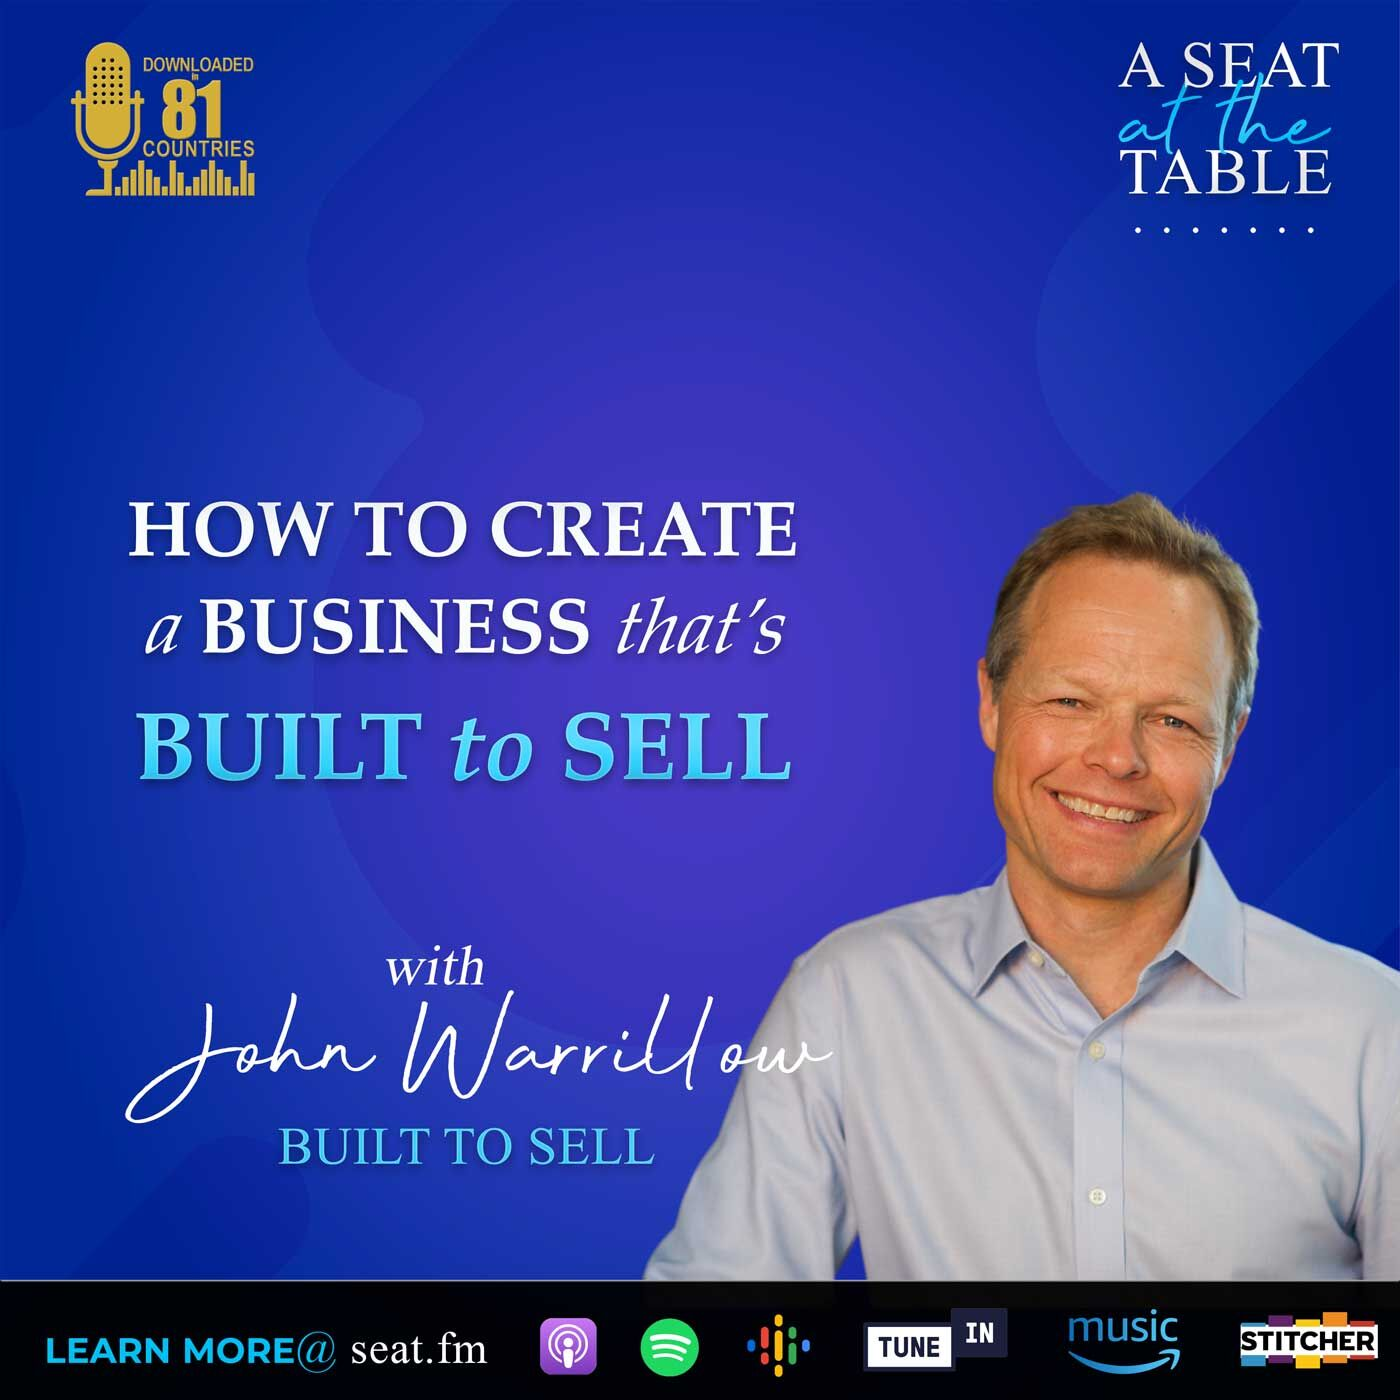 How to Create a Business That's Built to Sell